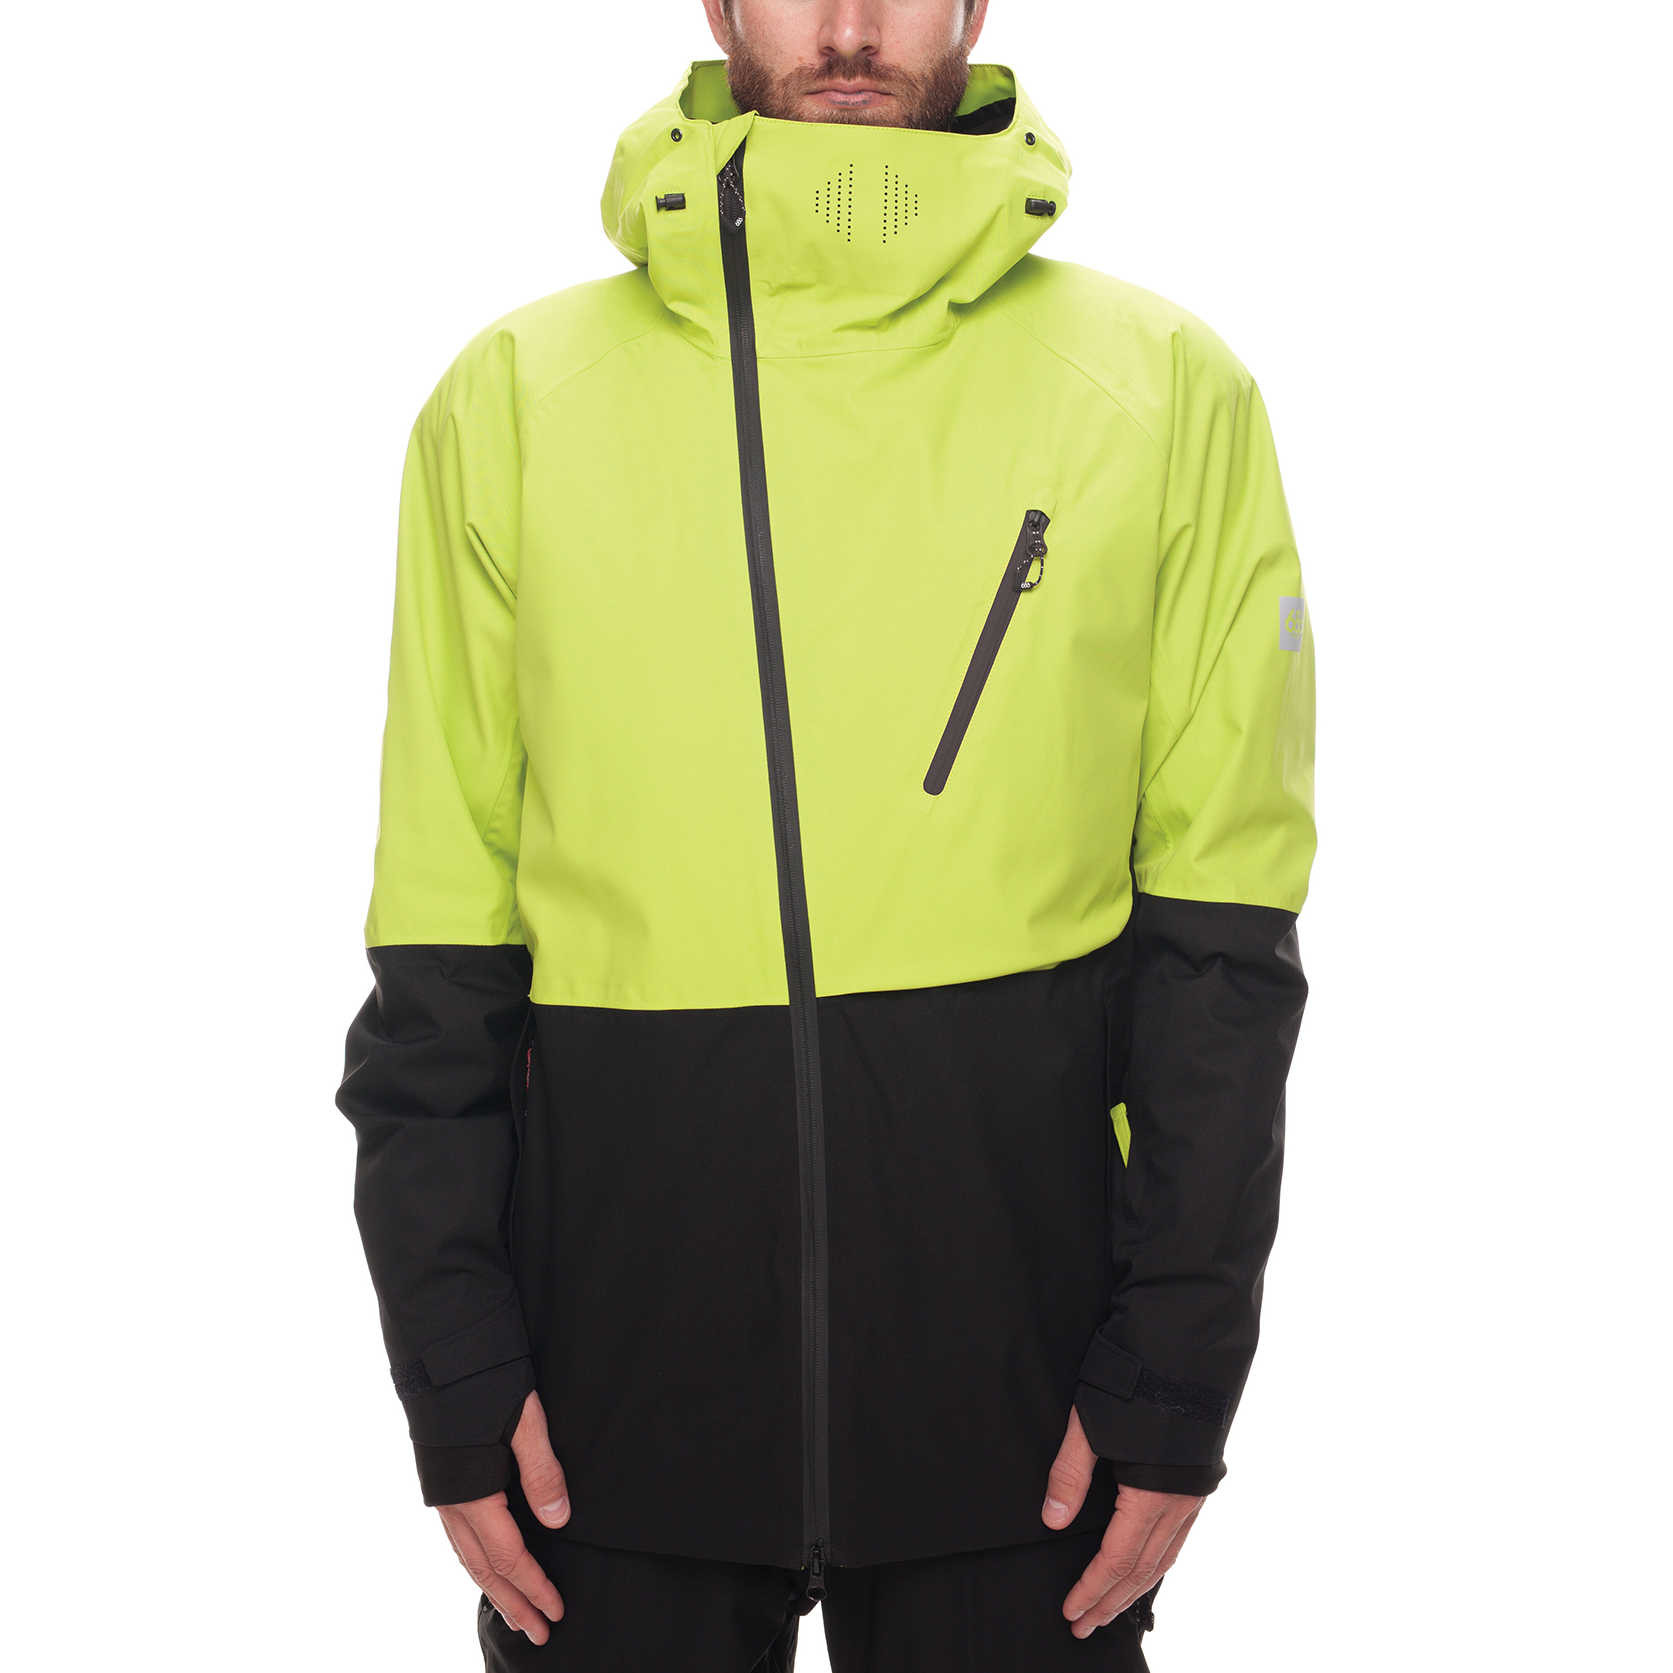 Veste de snowboard GLCR Hydra Thermagraph Jacket - Lime Twill Color Block